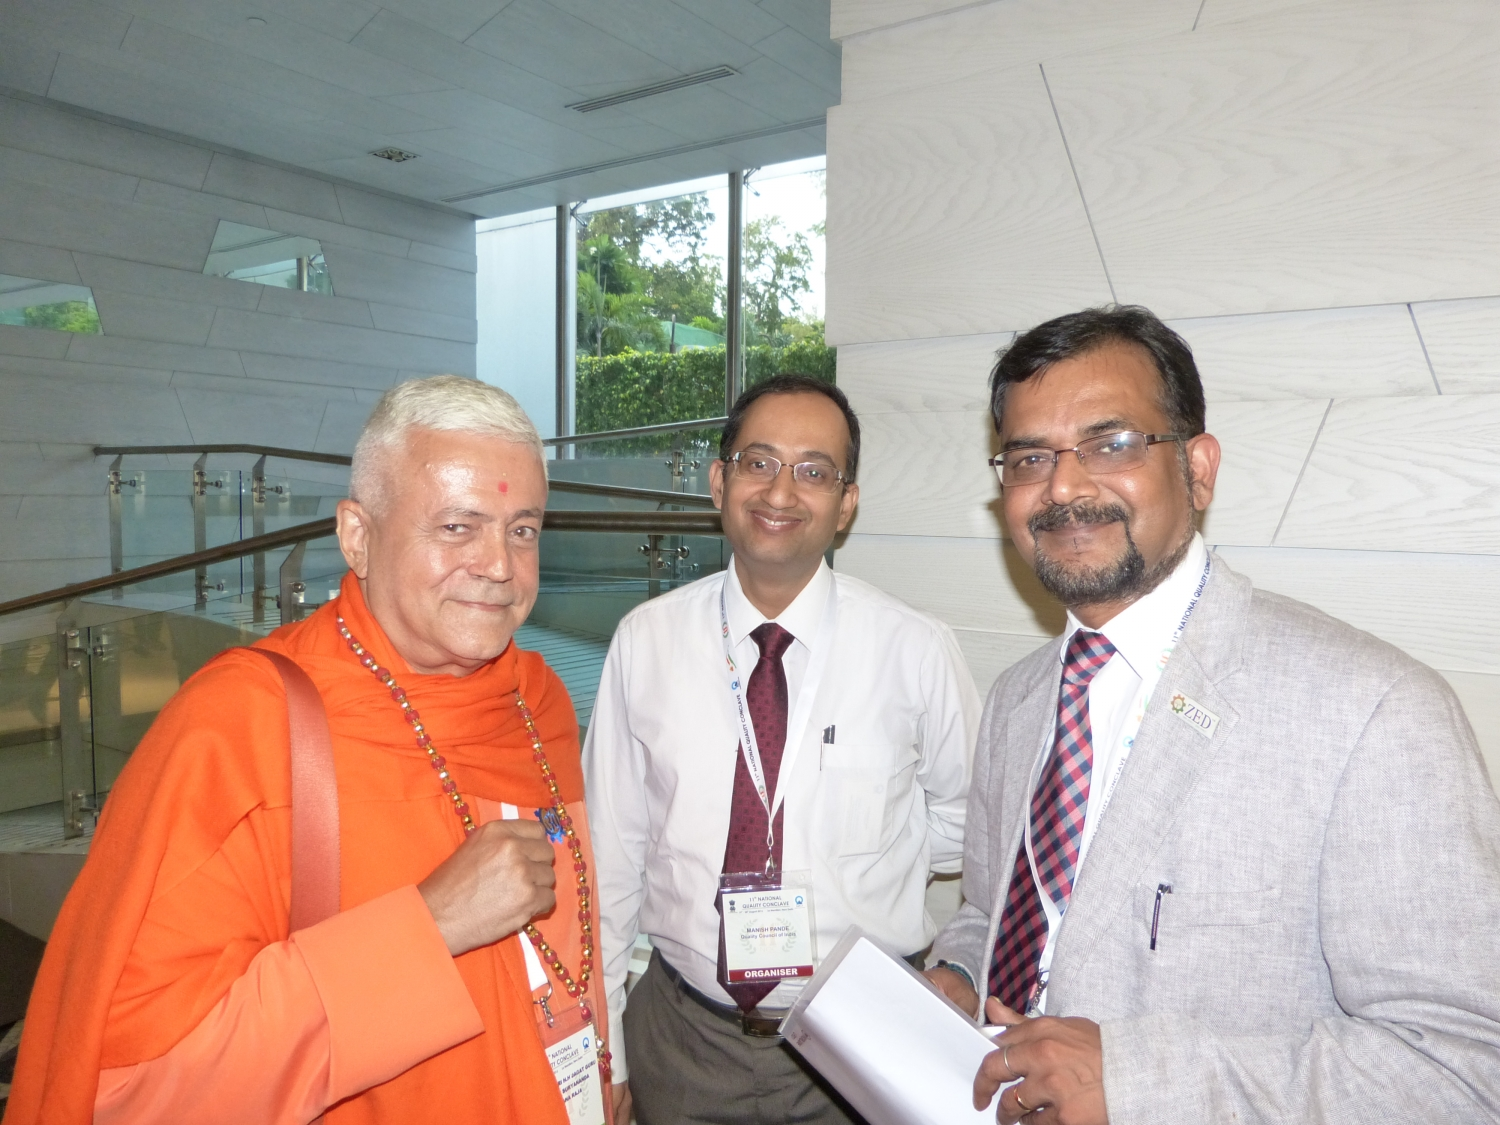 H.H. Jagat Guru Amrta Súryánanda Mahá Rája com Dr. Manish Pande, Joint Director of the QCI PADD e Dr. Ravi P. Singh, Secretário Geral do the Quality Council of India